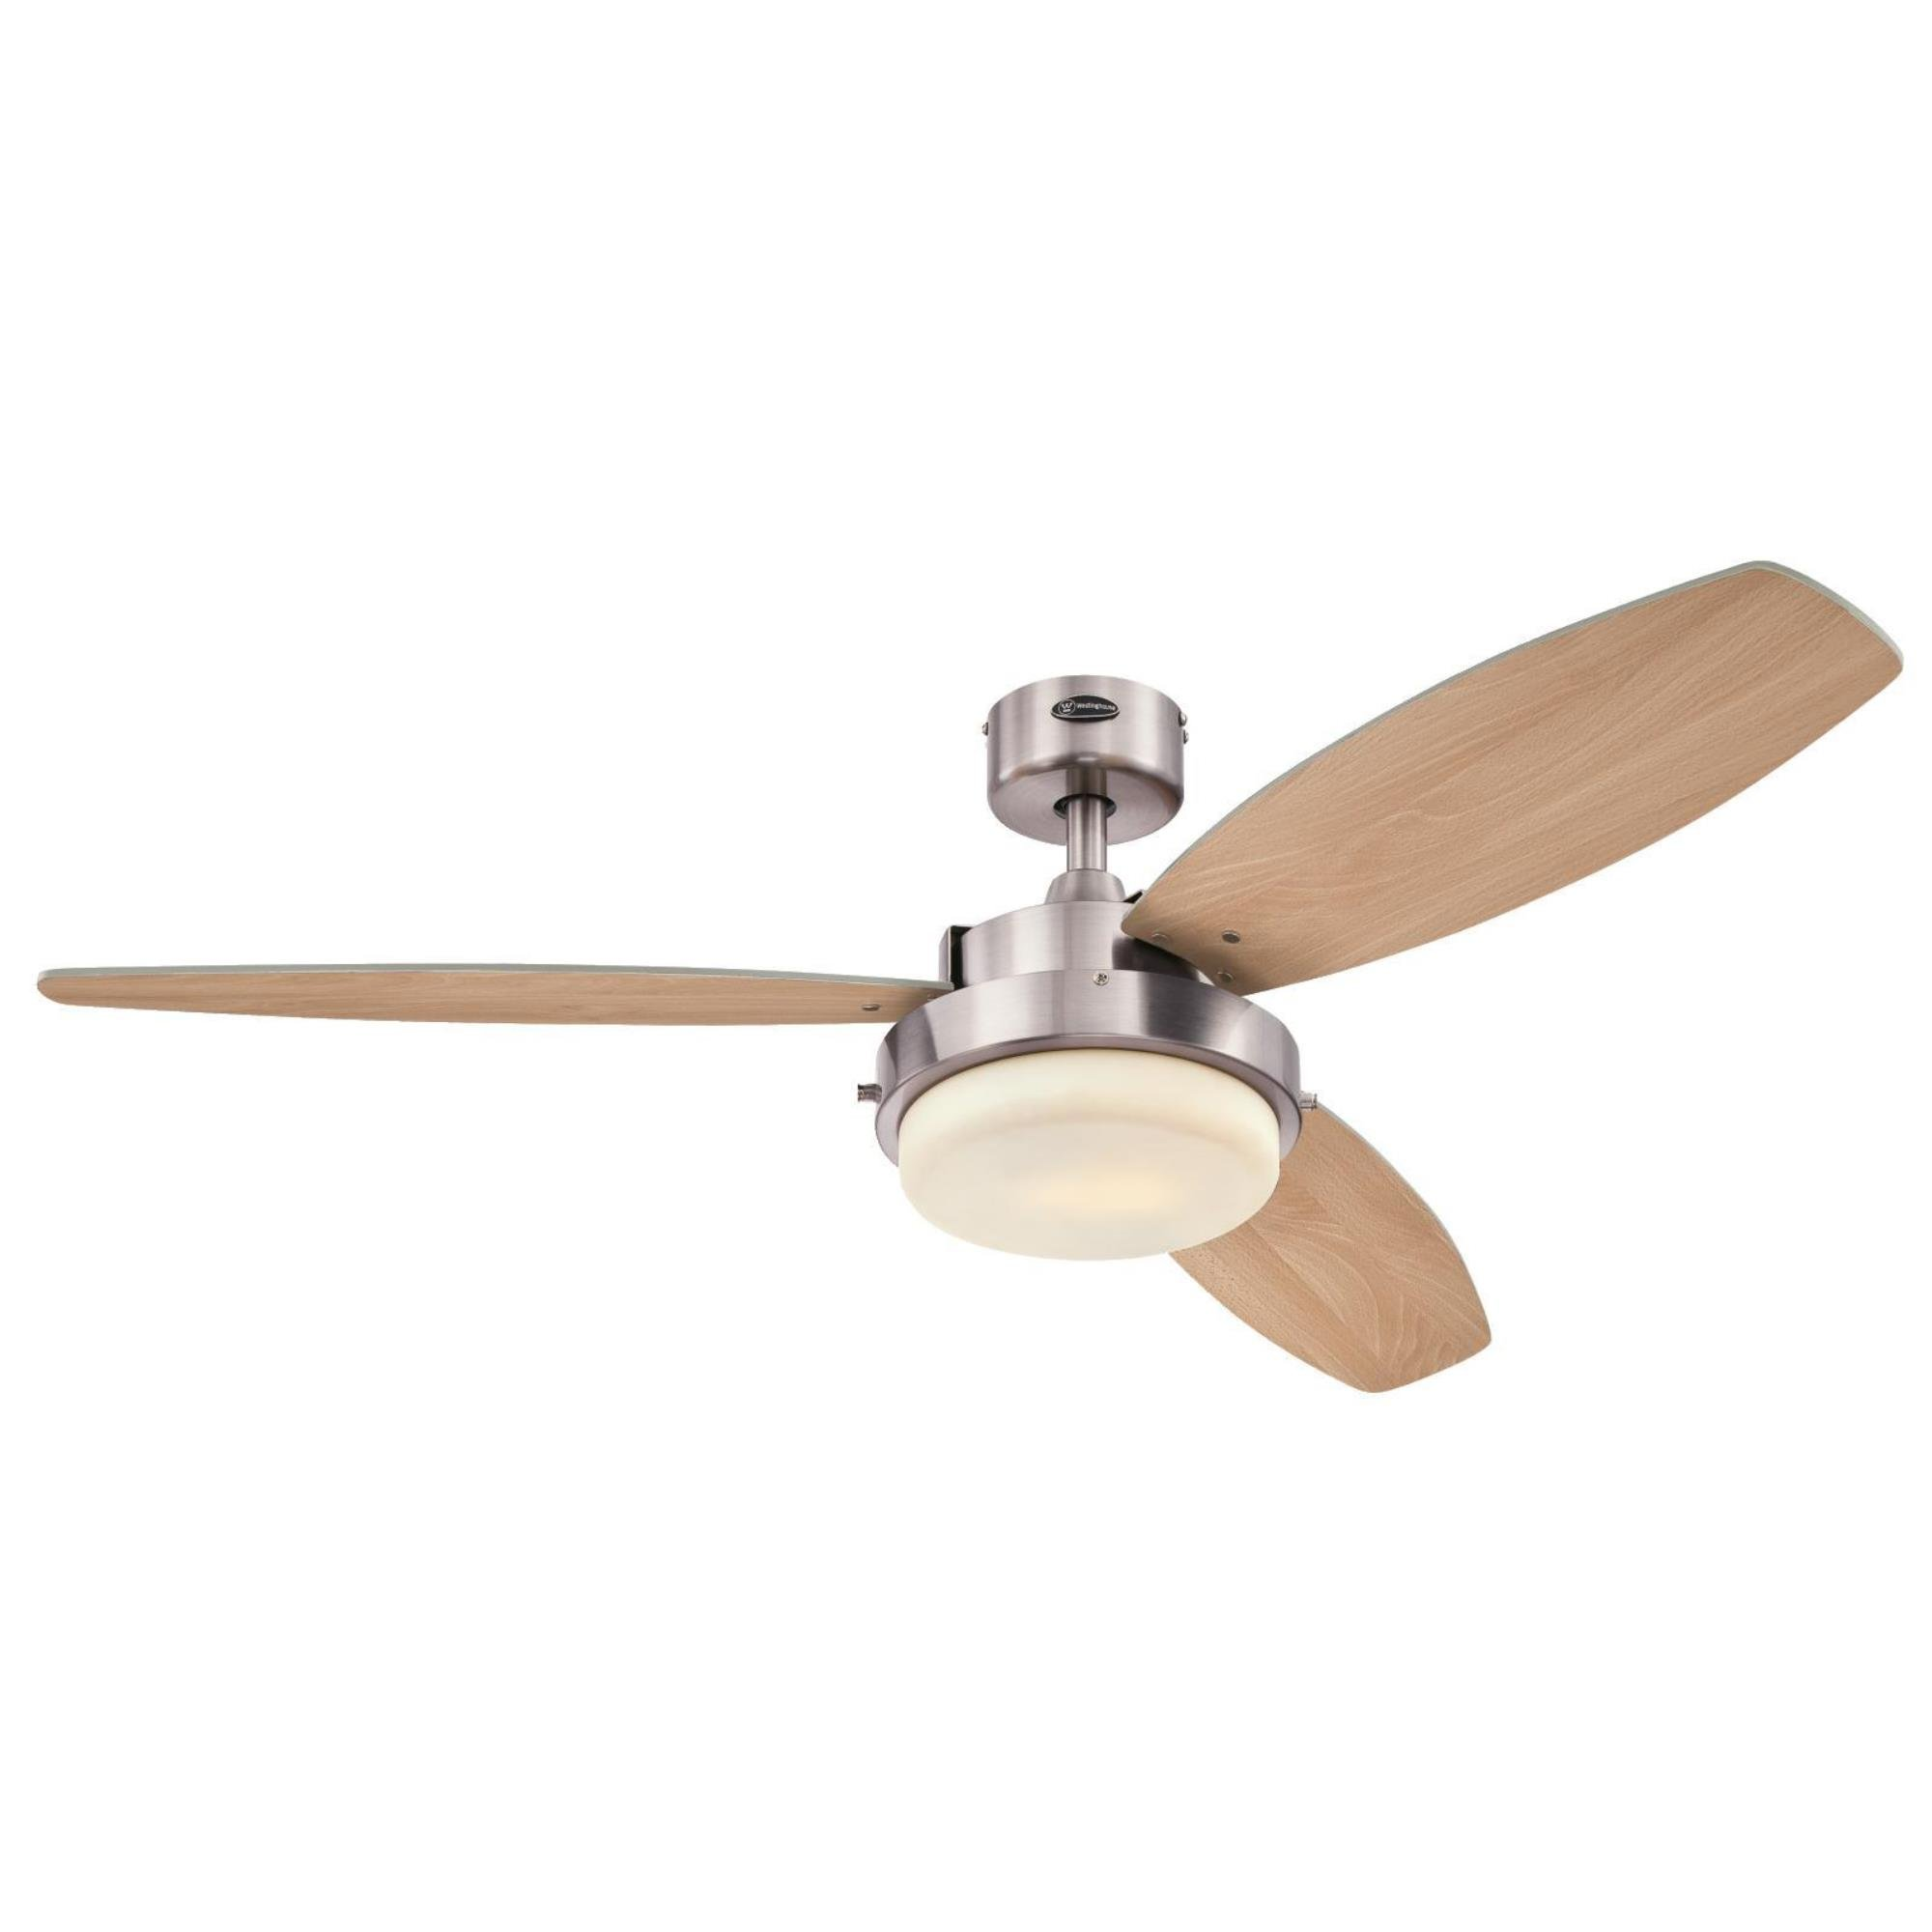 Westinghouse 7204100 Alloy Two-Light 52'' Reversible Plywood Three-Blade Indoor Ceiling Fan, Brushed Nickel